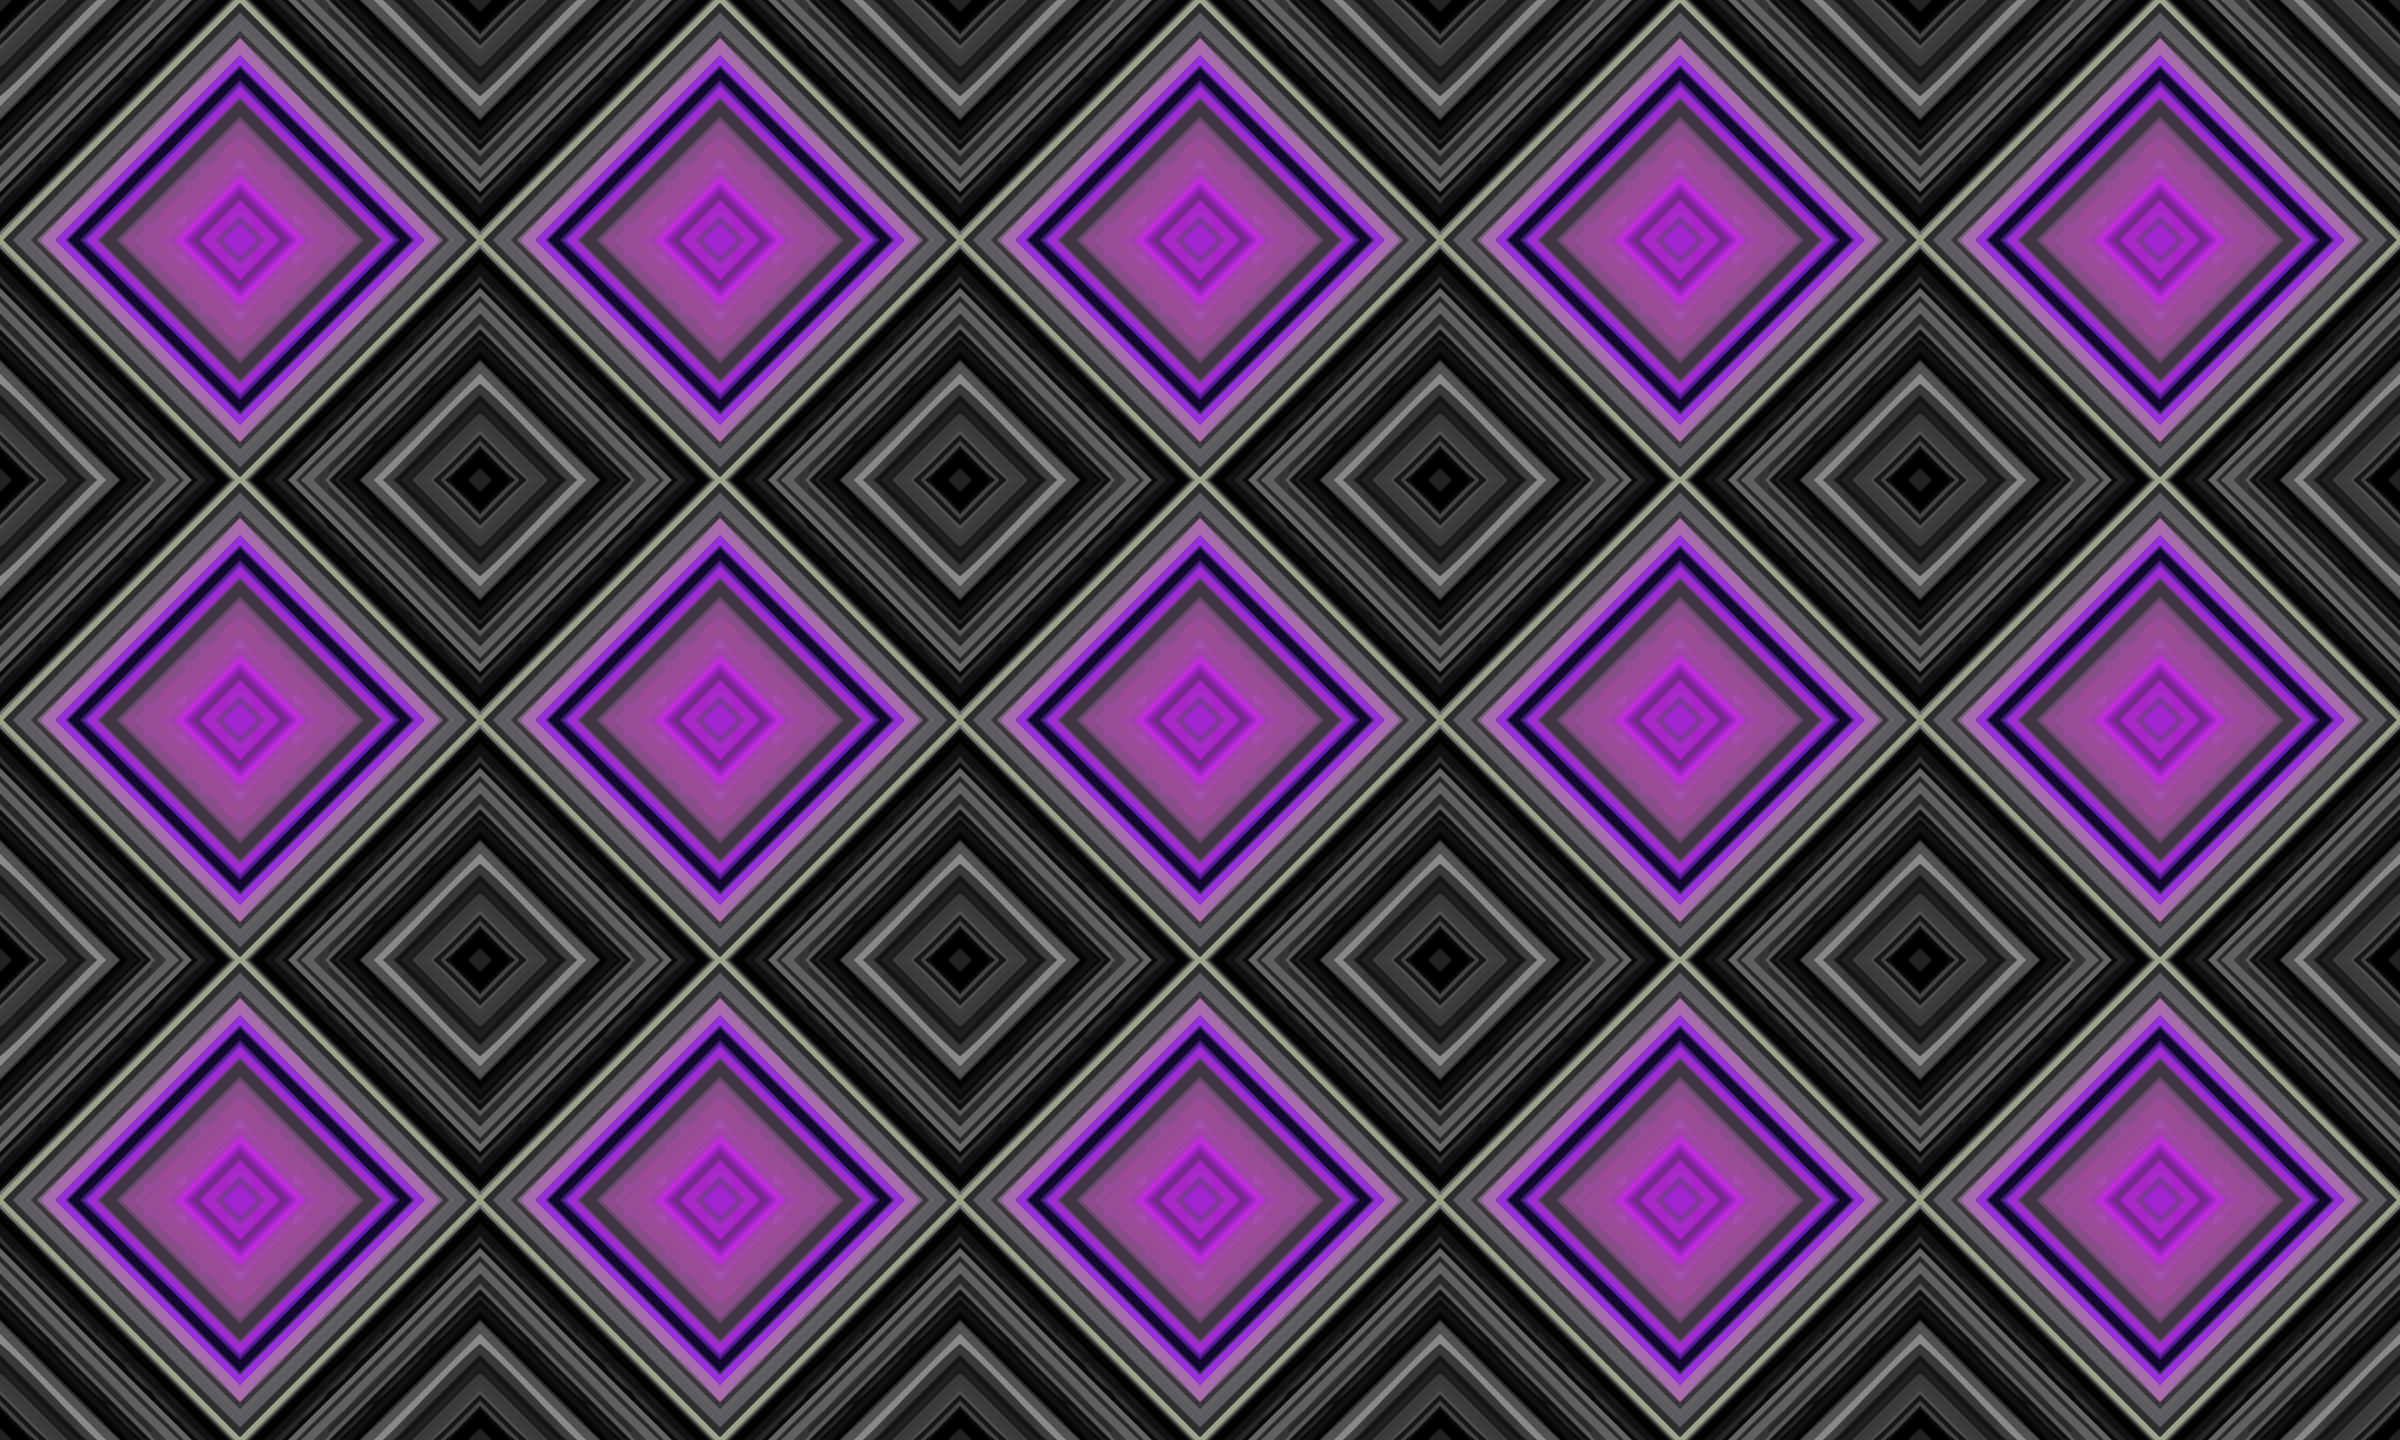 Background pattern 214 (colour 6) by Firkin